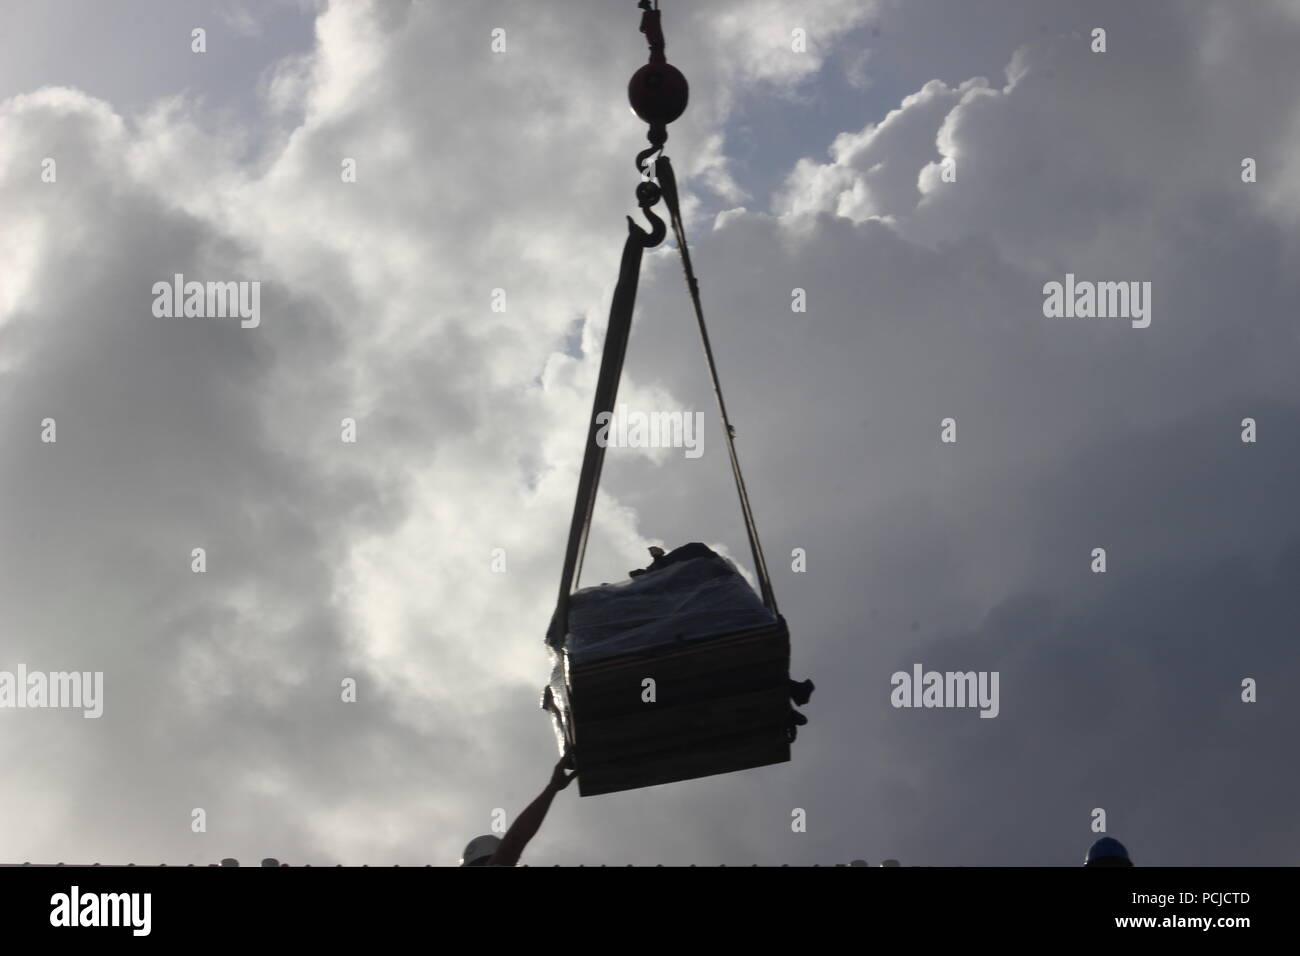 A pallet of seized cocaine hangs from a crane hook in Port Everglades, Aug. 1, 2018.  The drugs were seized during the interdiction of five suspected smuggling vessels and the recovery of two floating bile fields found off the coast of Mexico, Central and South America by Coast Guard Cutters Hamilton (WMSL-753), Alert (WMEC-630) and Venturous (WMEC-625). Coast Guard Photo by Seaman Erik Villa-Rodriguez. - Stock Image